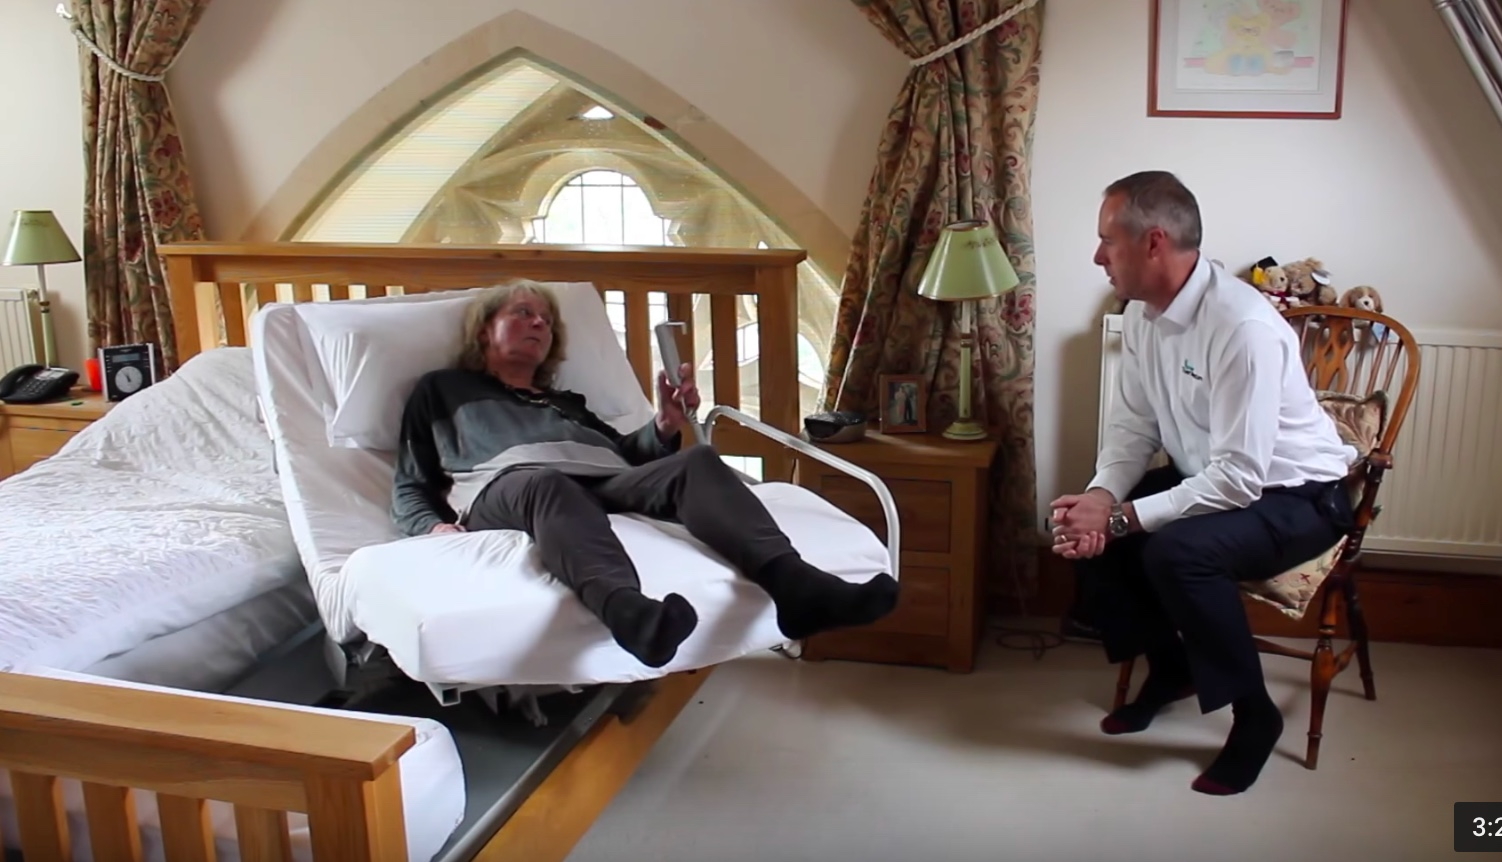 Sarah who lives with Multiple Sclerosis explains how her Rotoflex bed helps maintain her independence